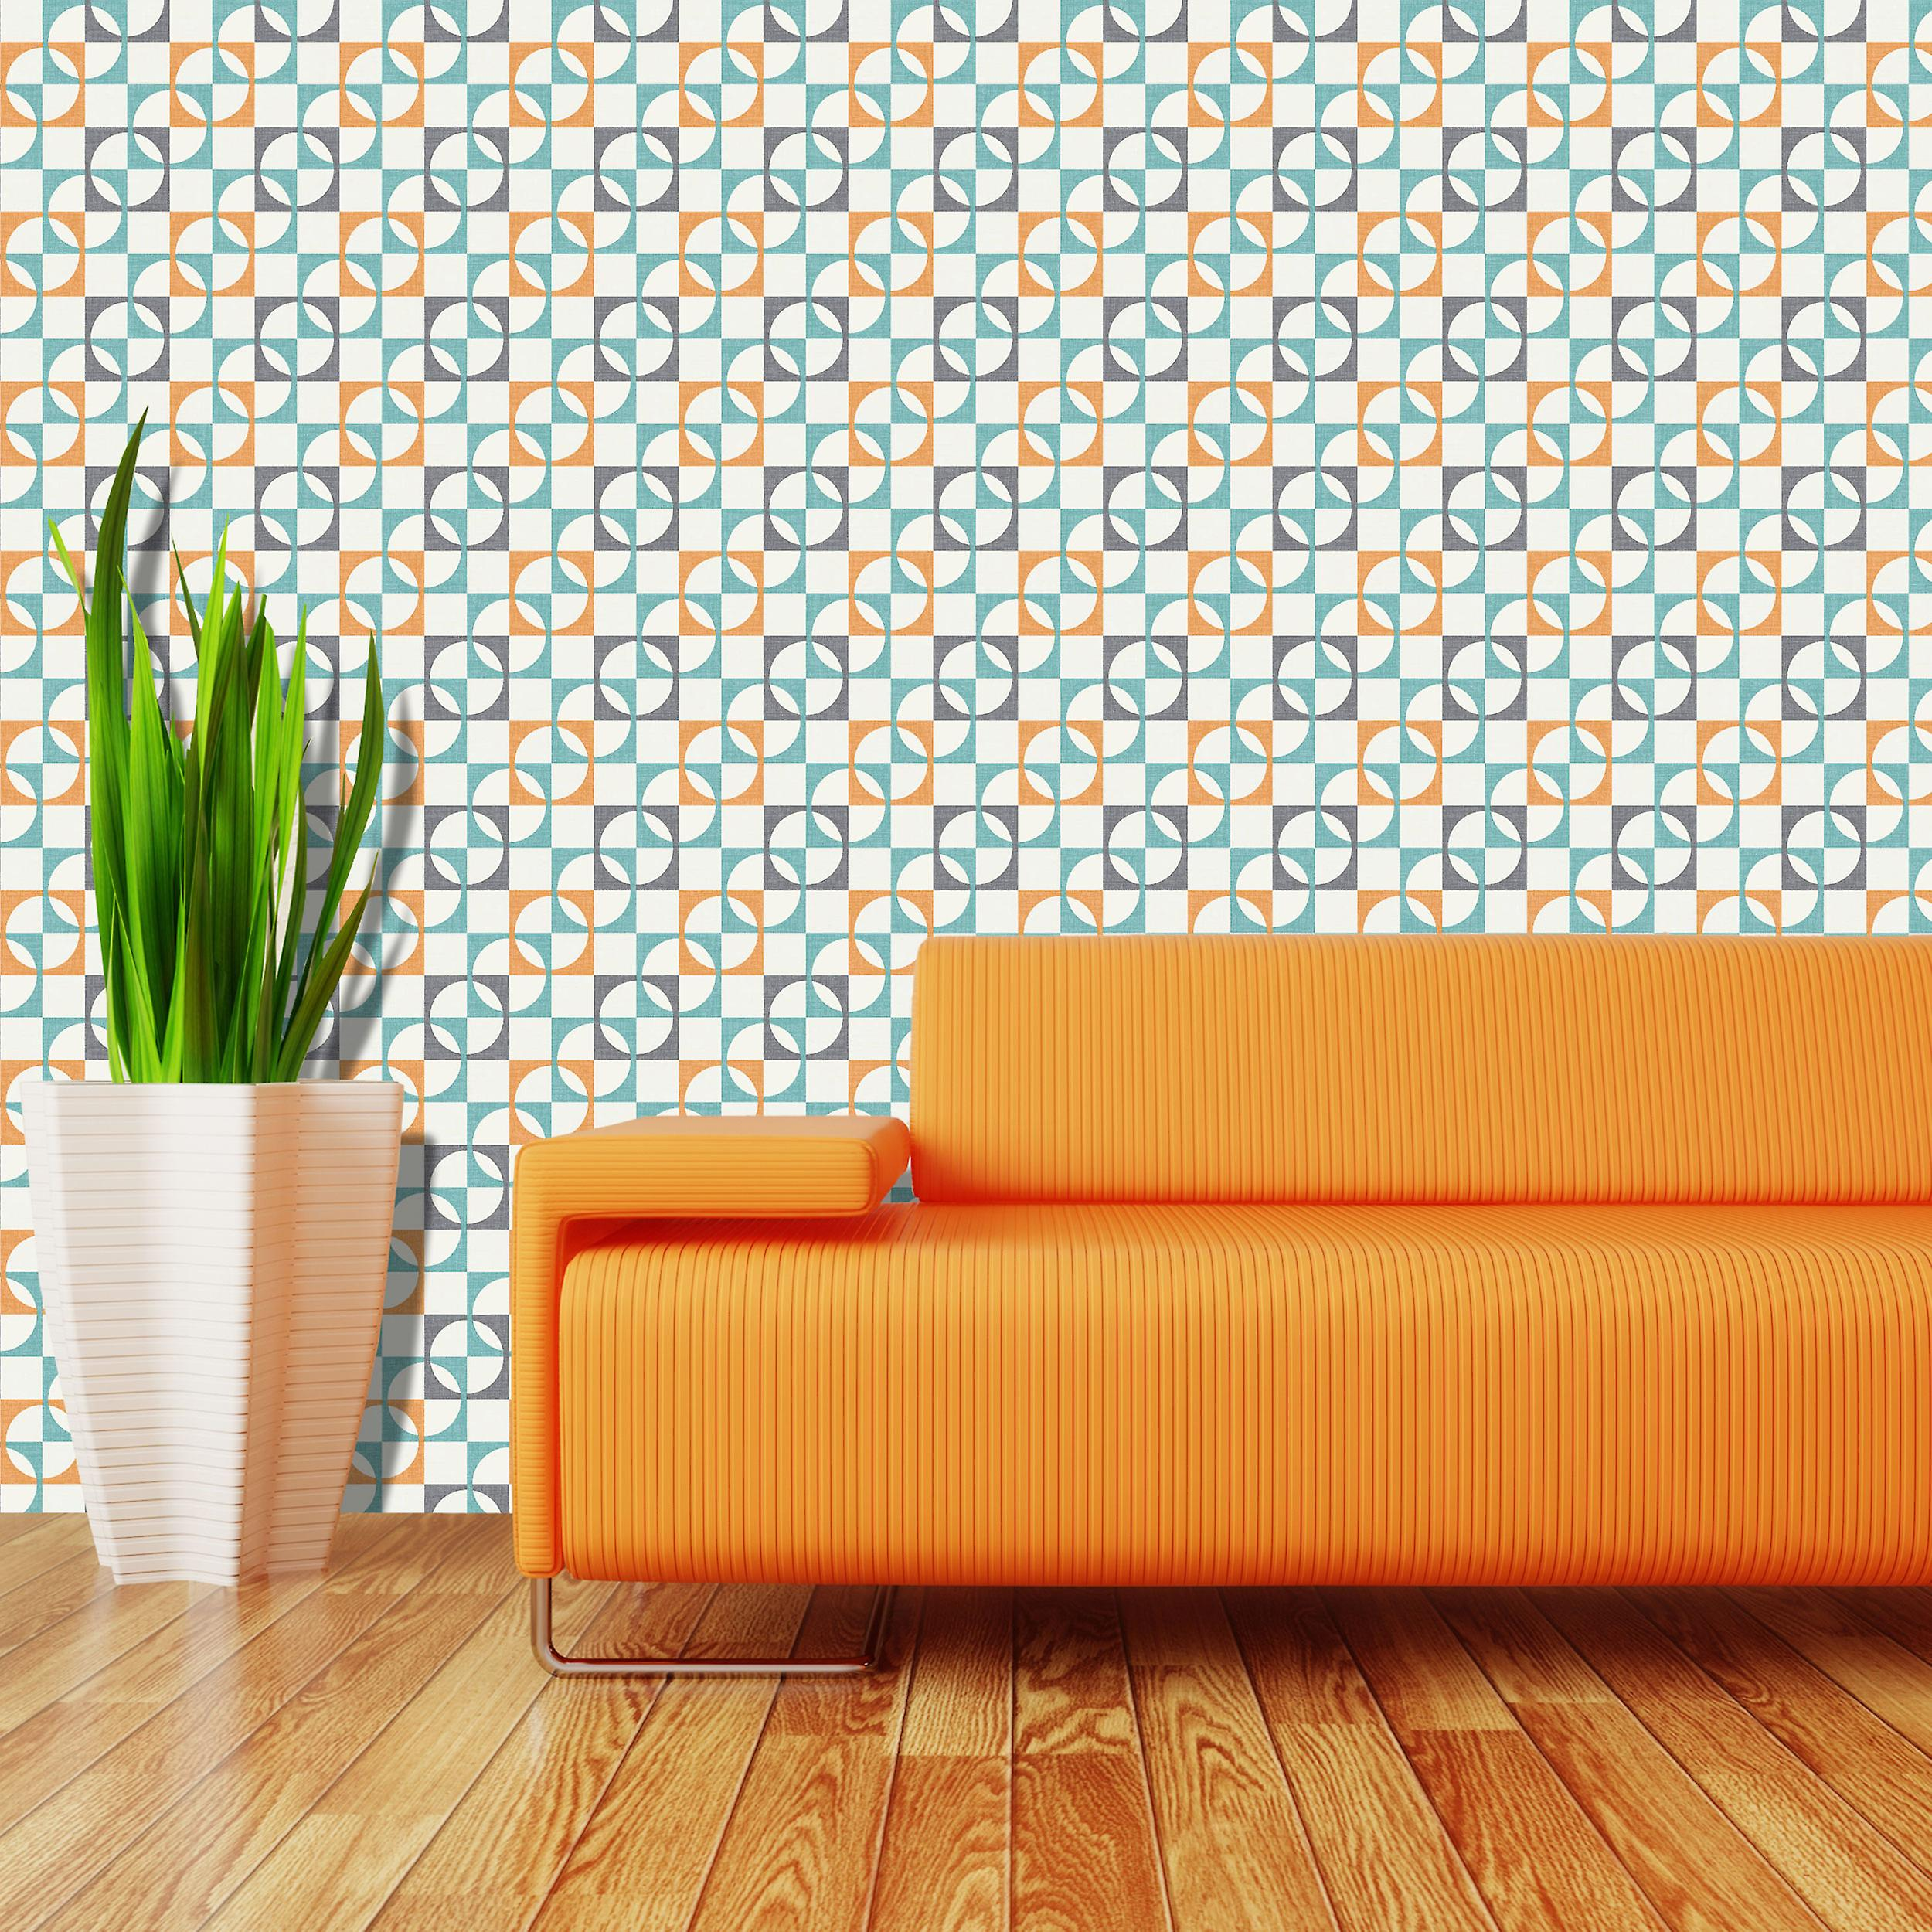 Retro Wallpaper Geometric Squares Tiles Orange Charcoal Teal White Rasch